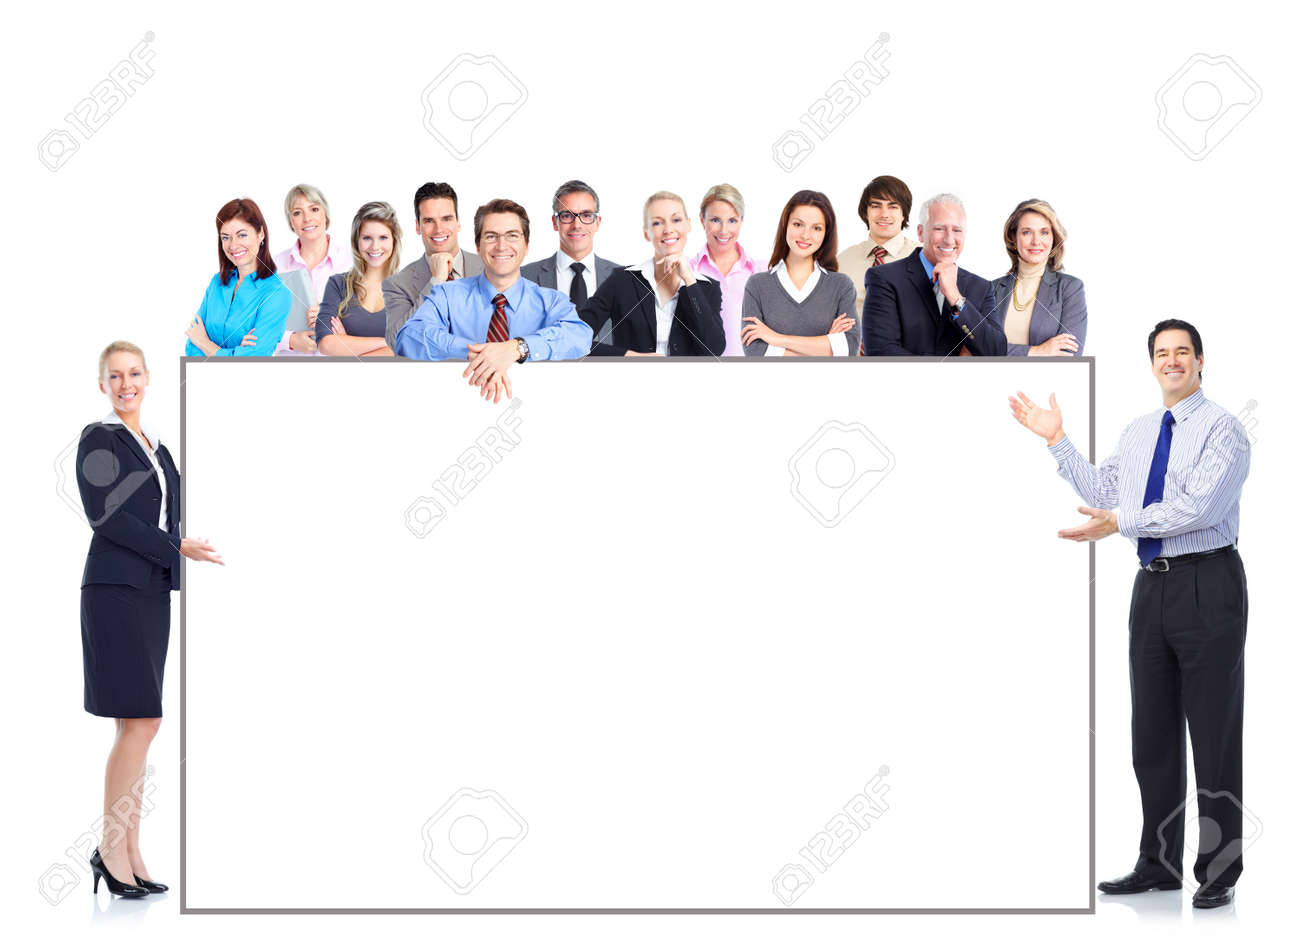 Business people team Stock Photo - 10280666